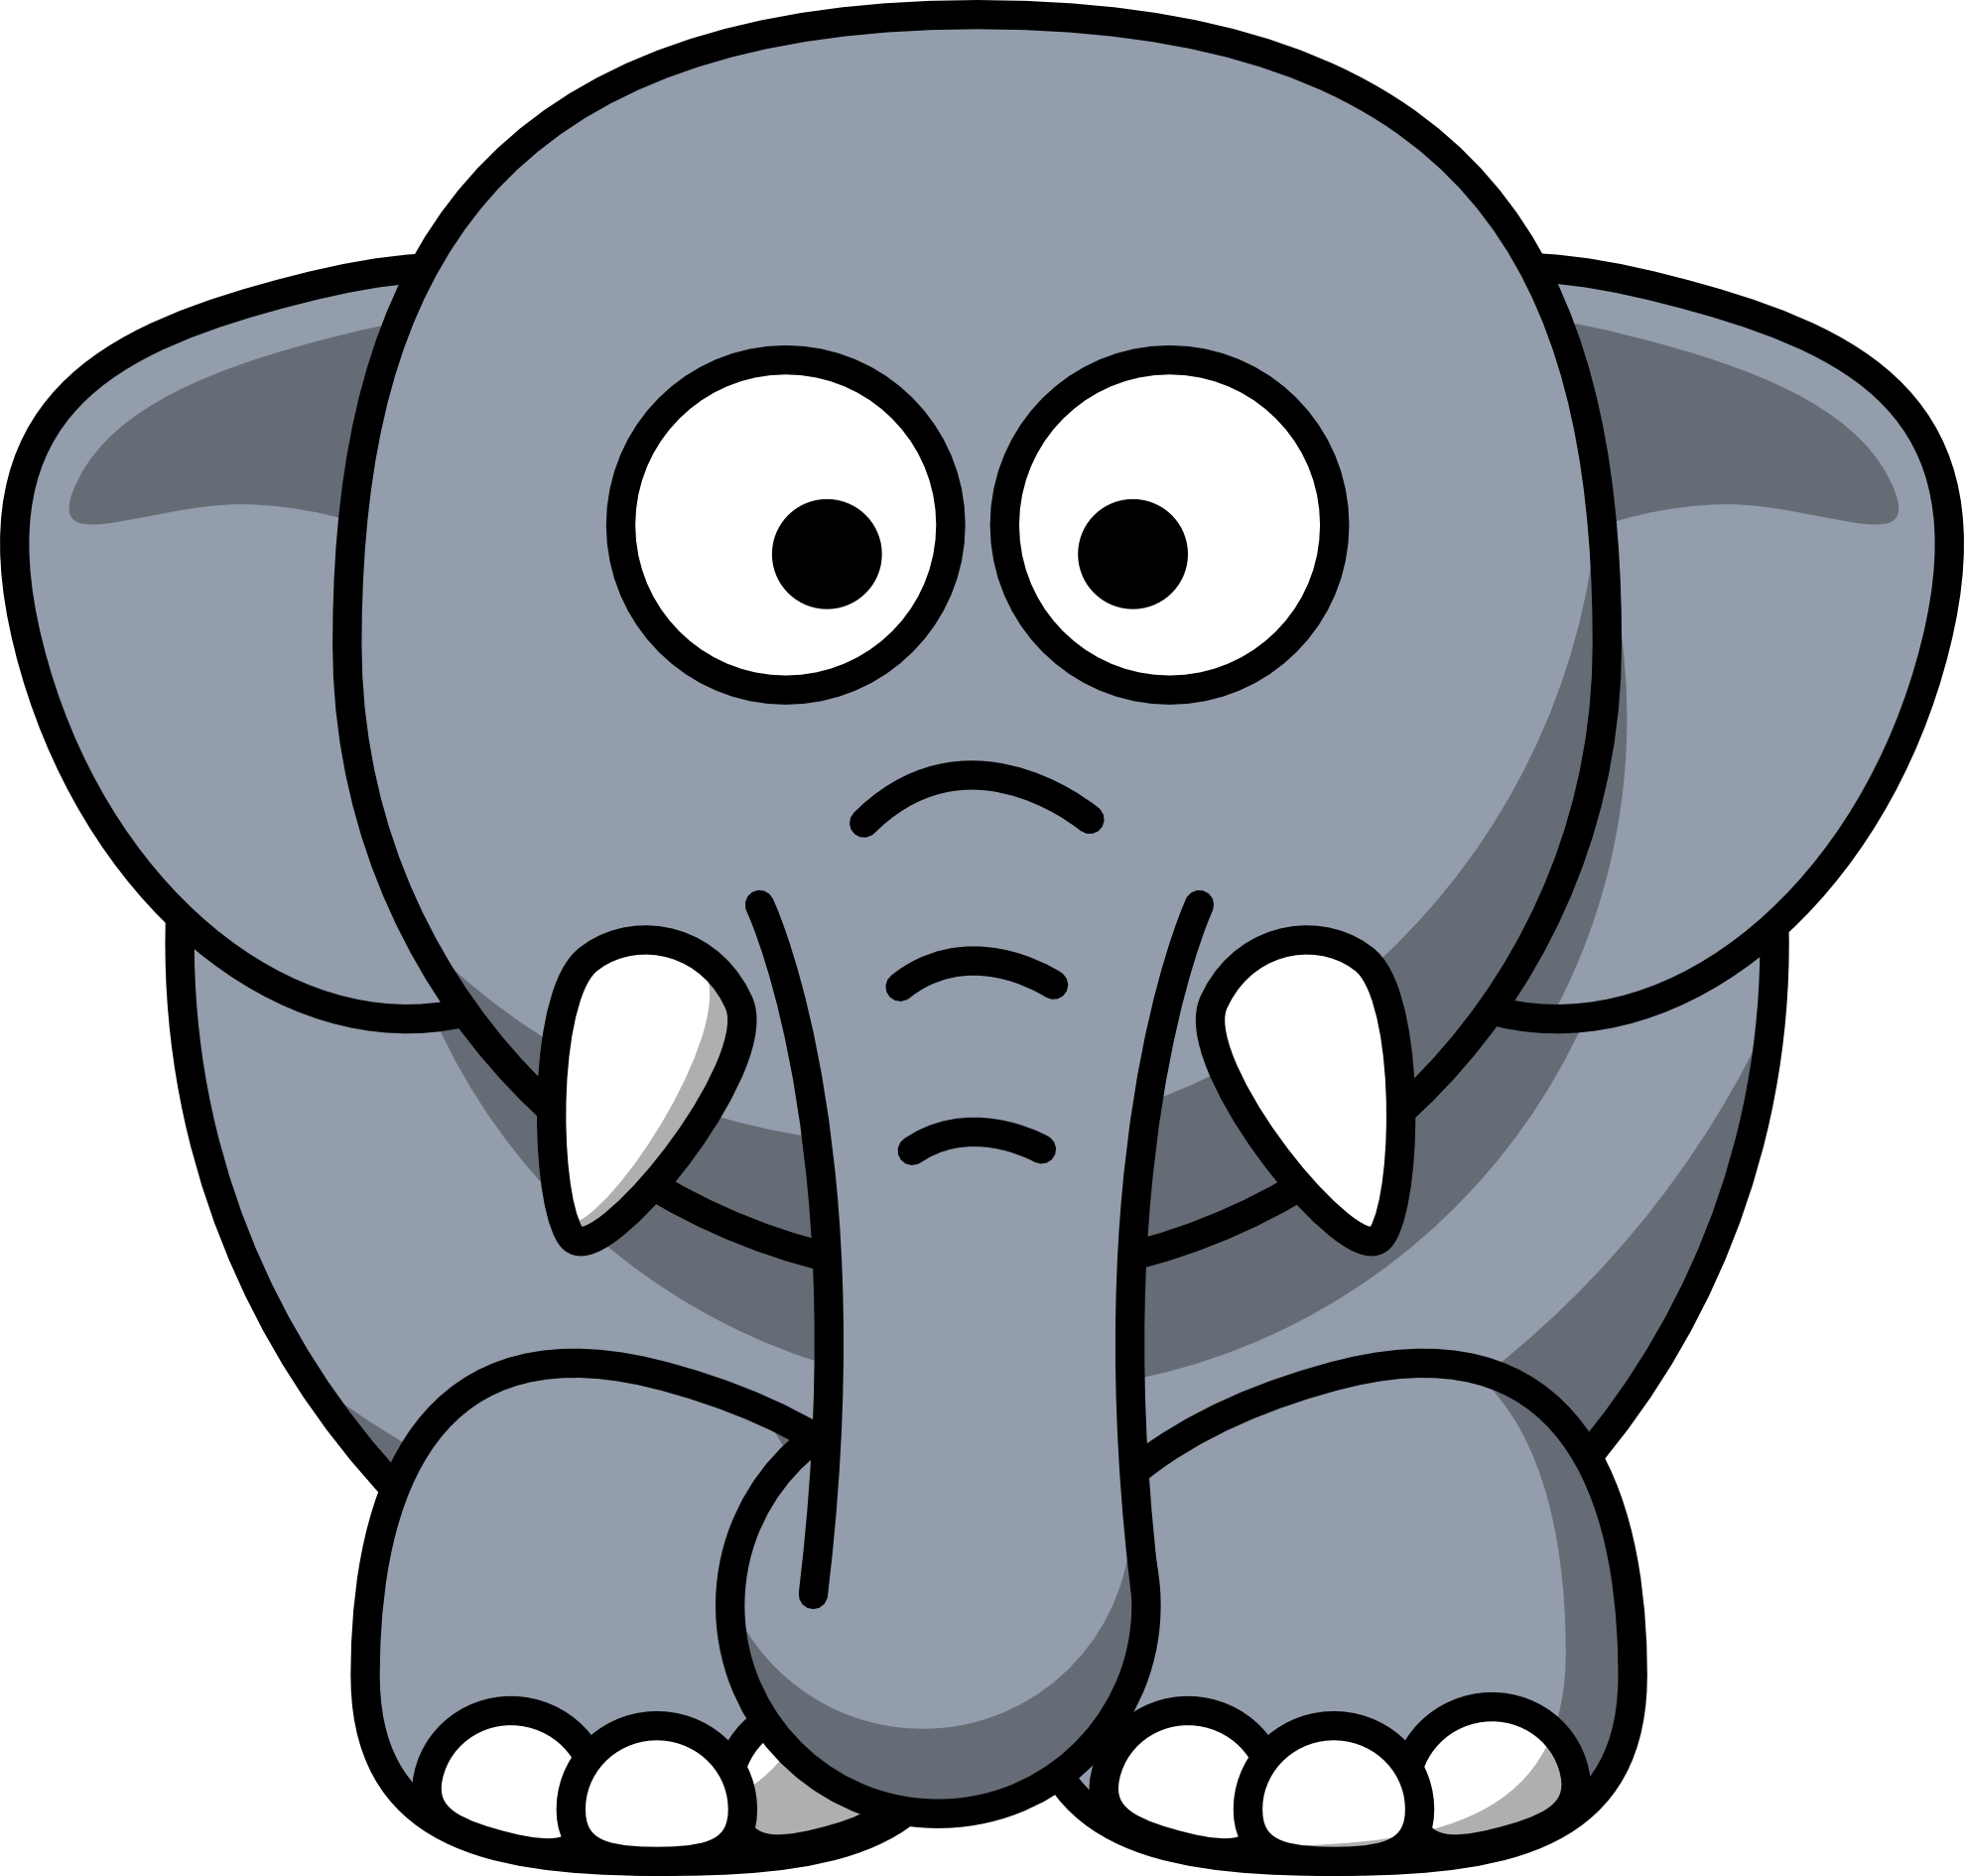 banner transparent library Elephants clipart. Elephant panda free images.